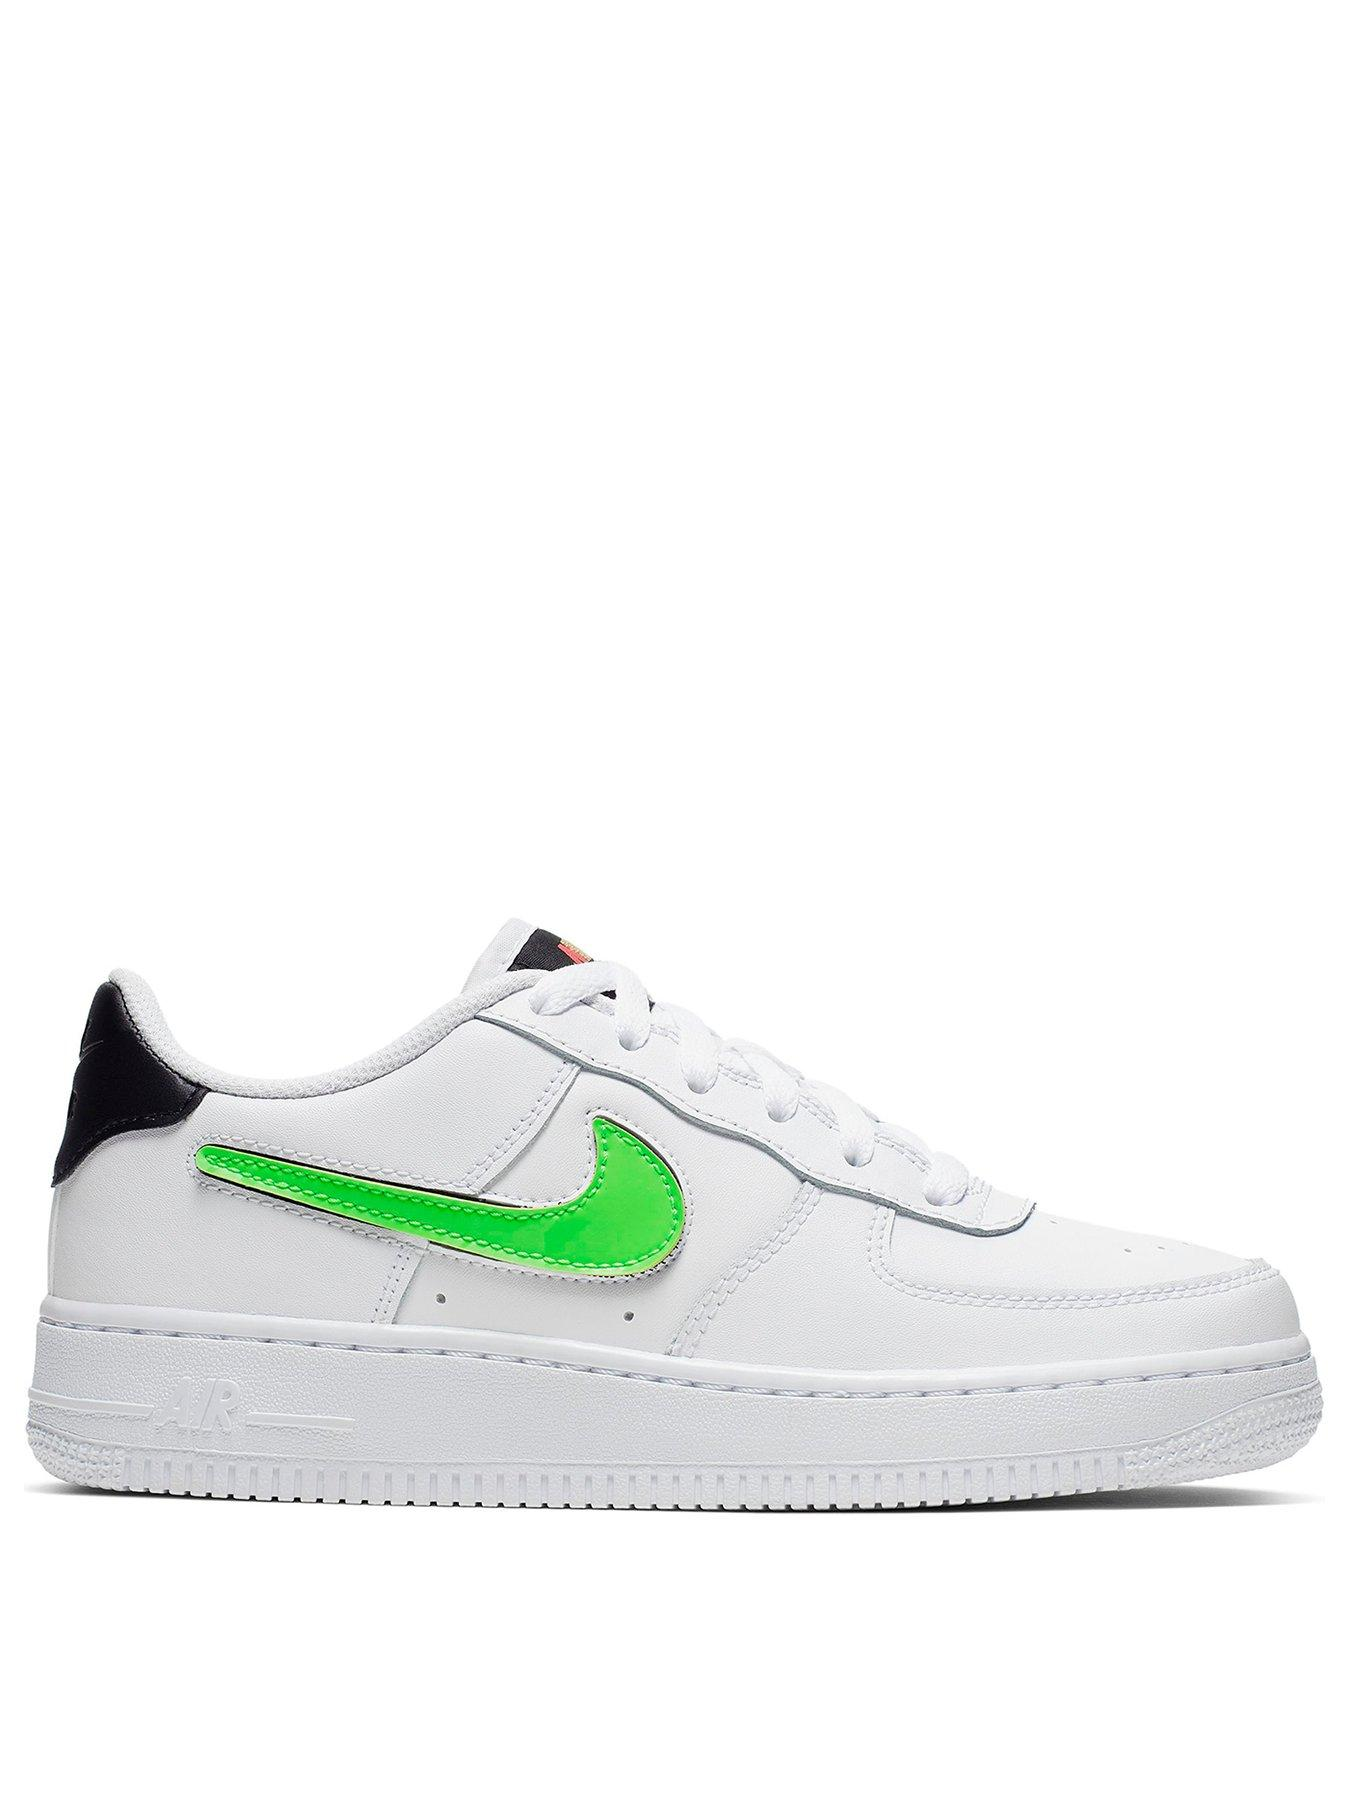 Nike Air Force 1 Junior LV8 3 Trainers